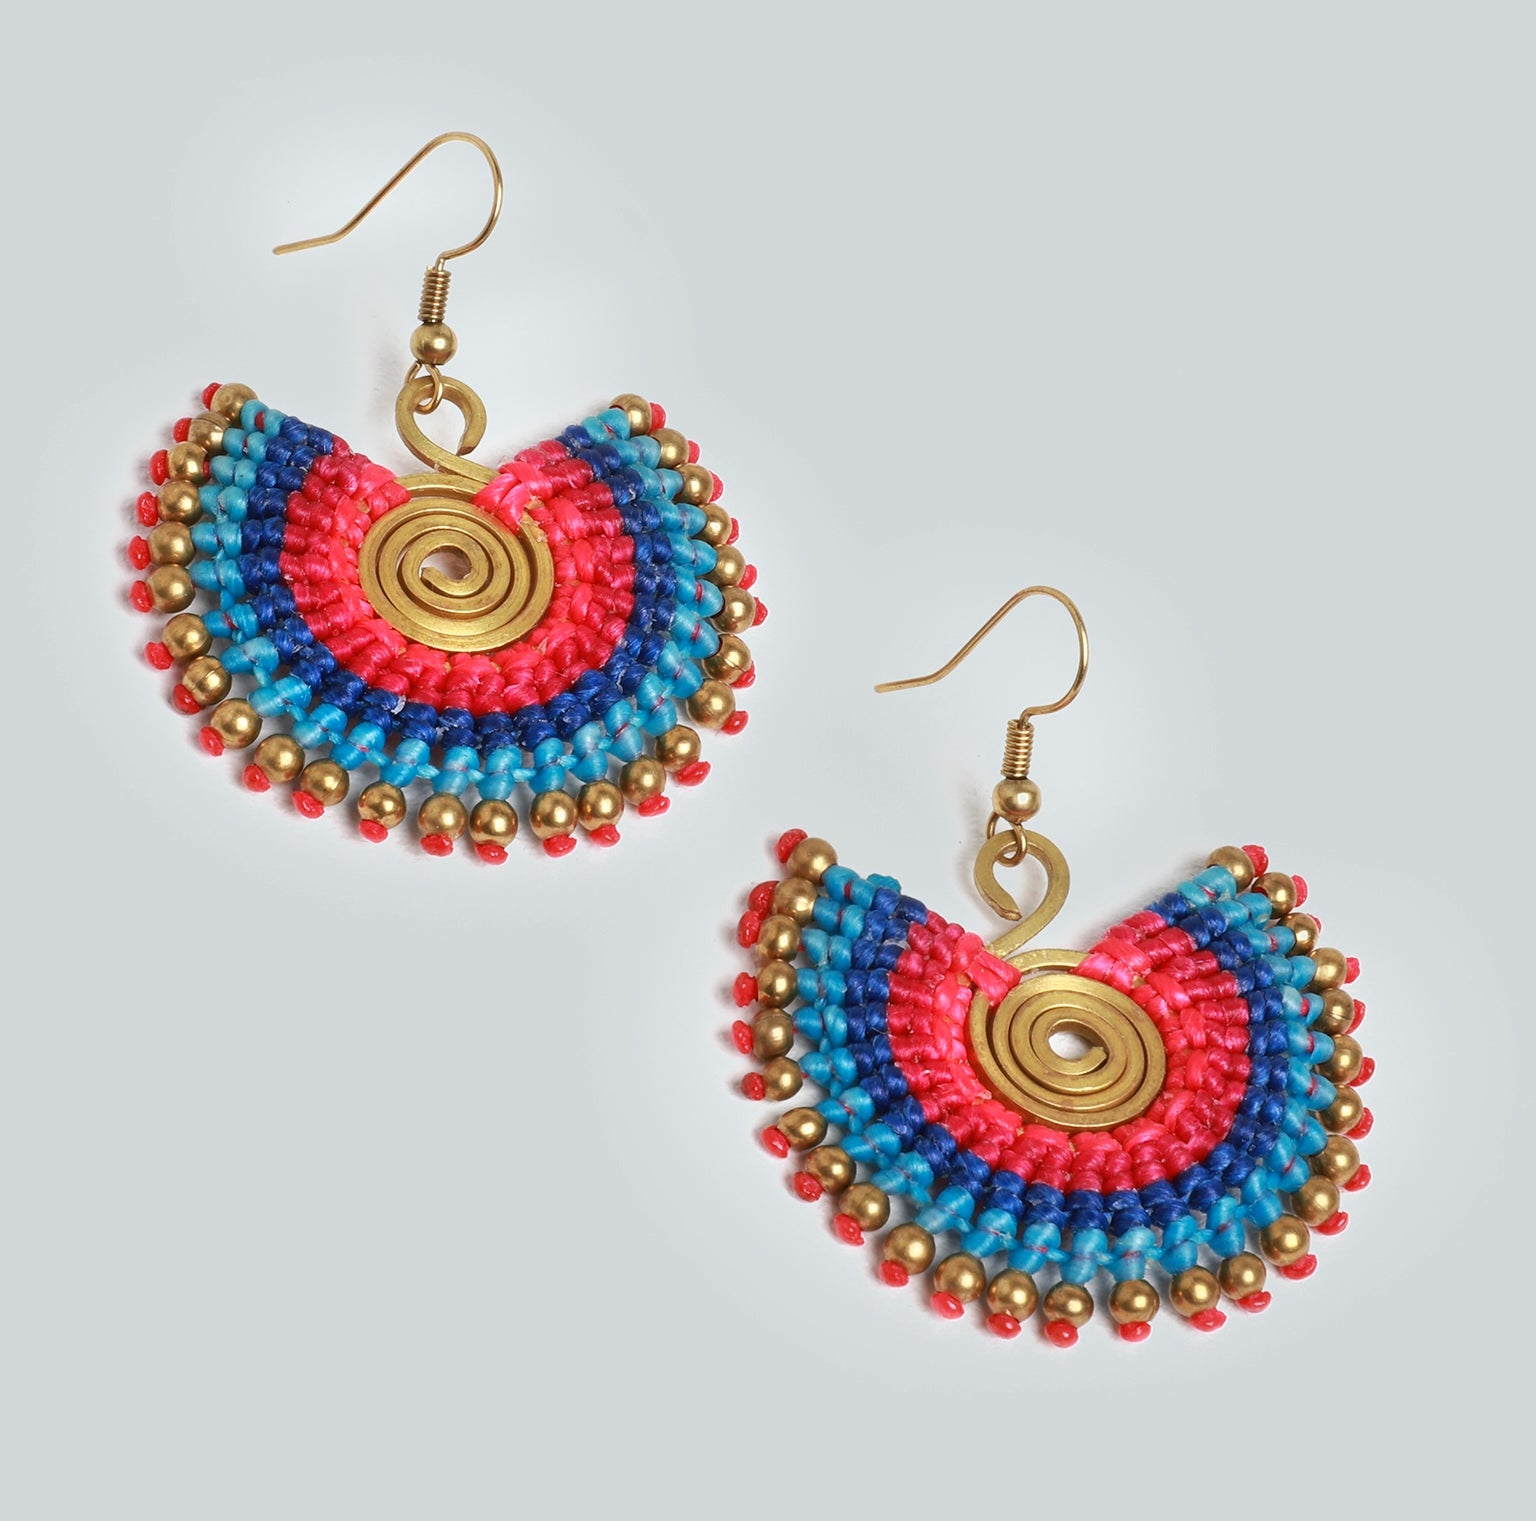 Statement Earrings in Brights